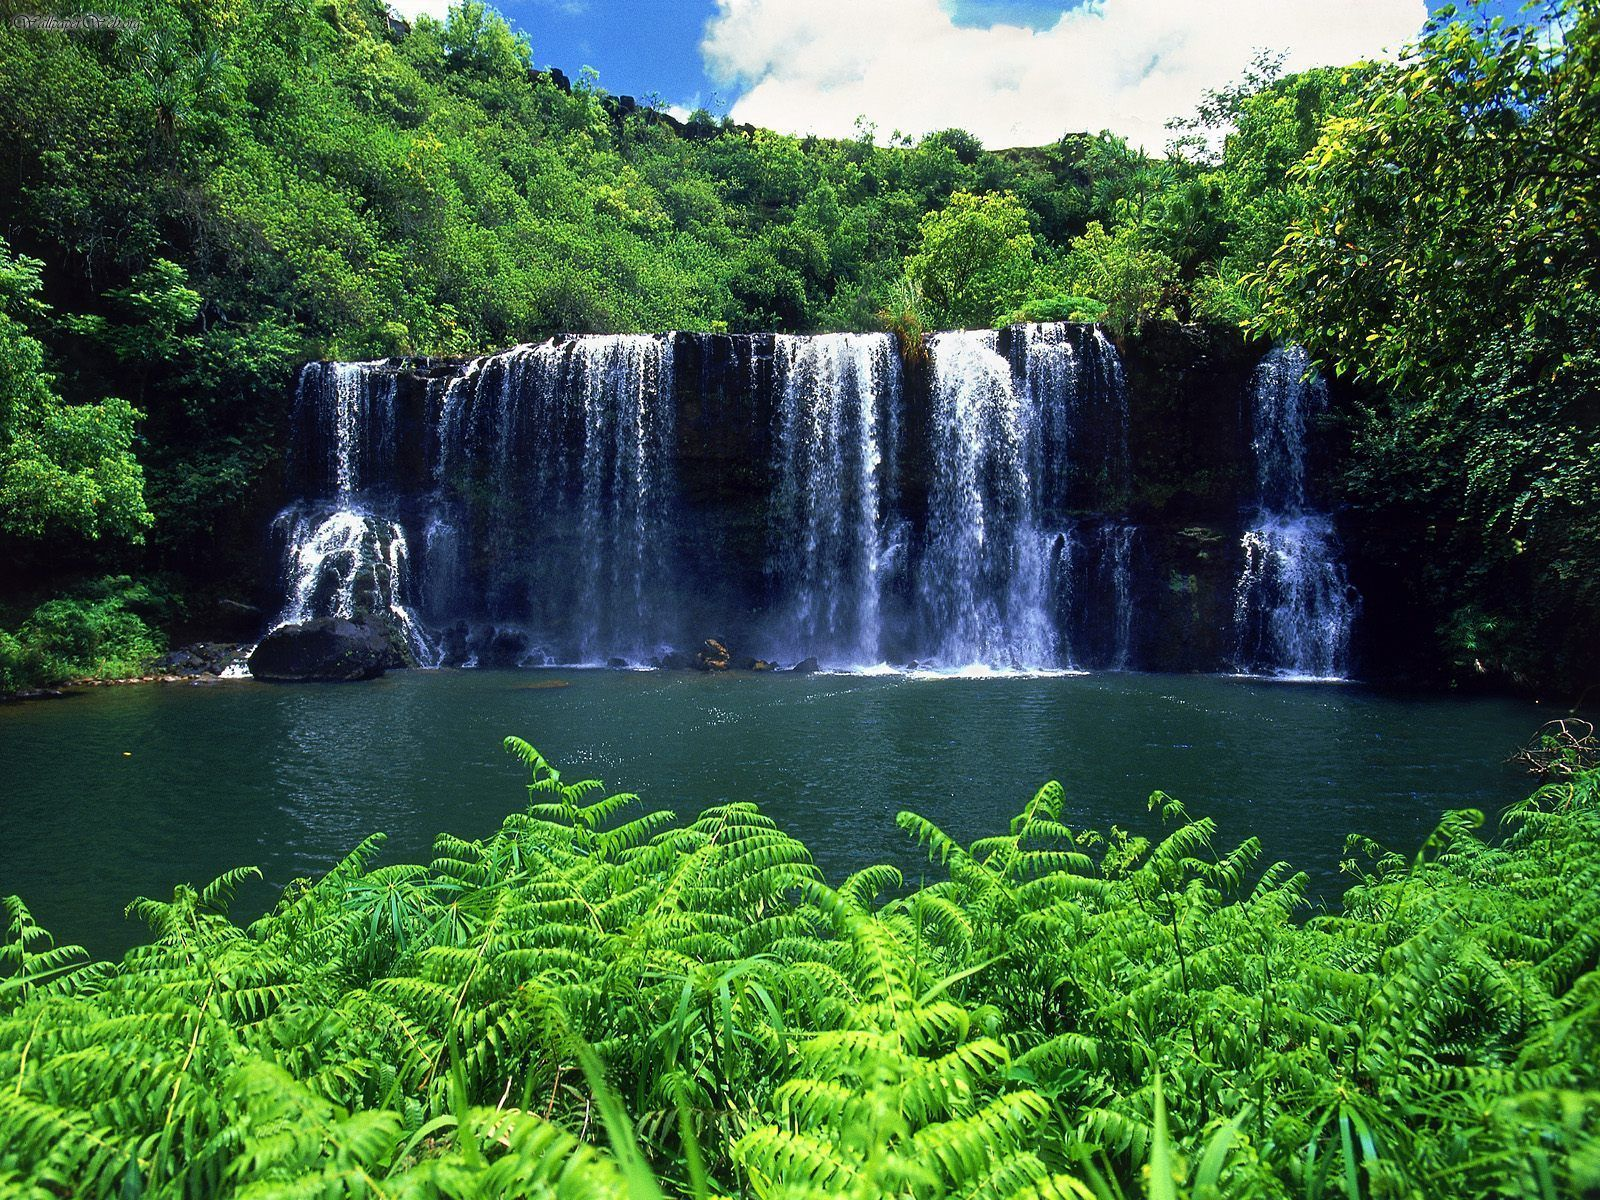 Kauai The Garden Island Images Waterfalls Hd Wallpaper And Background Photos